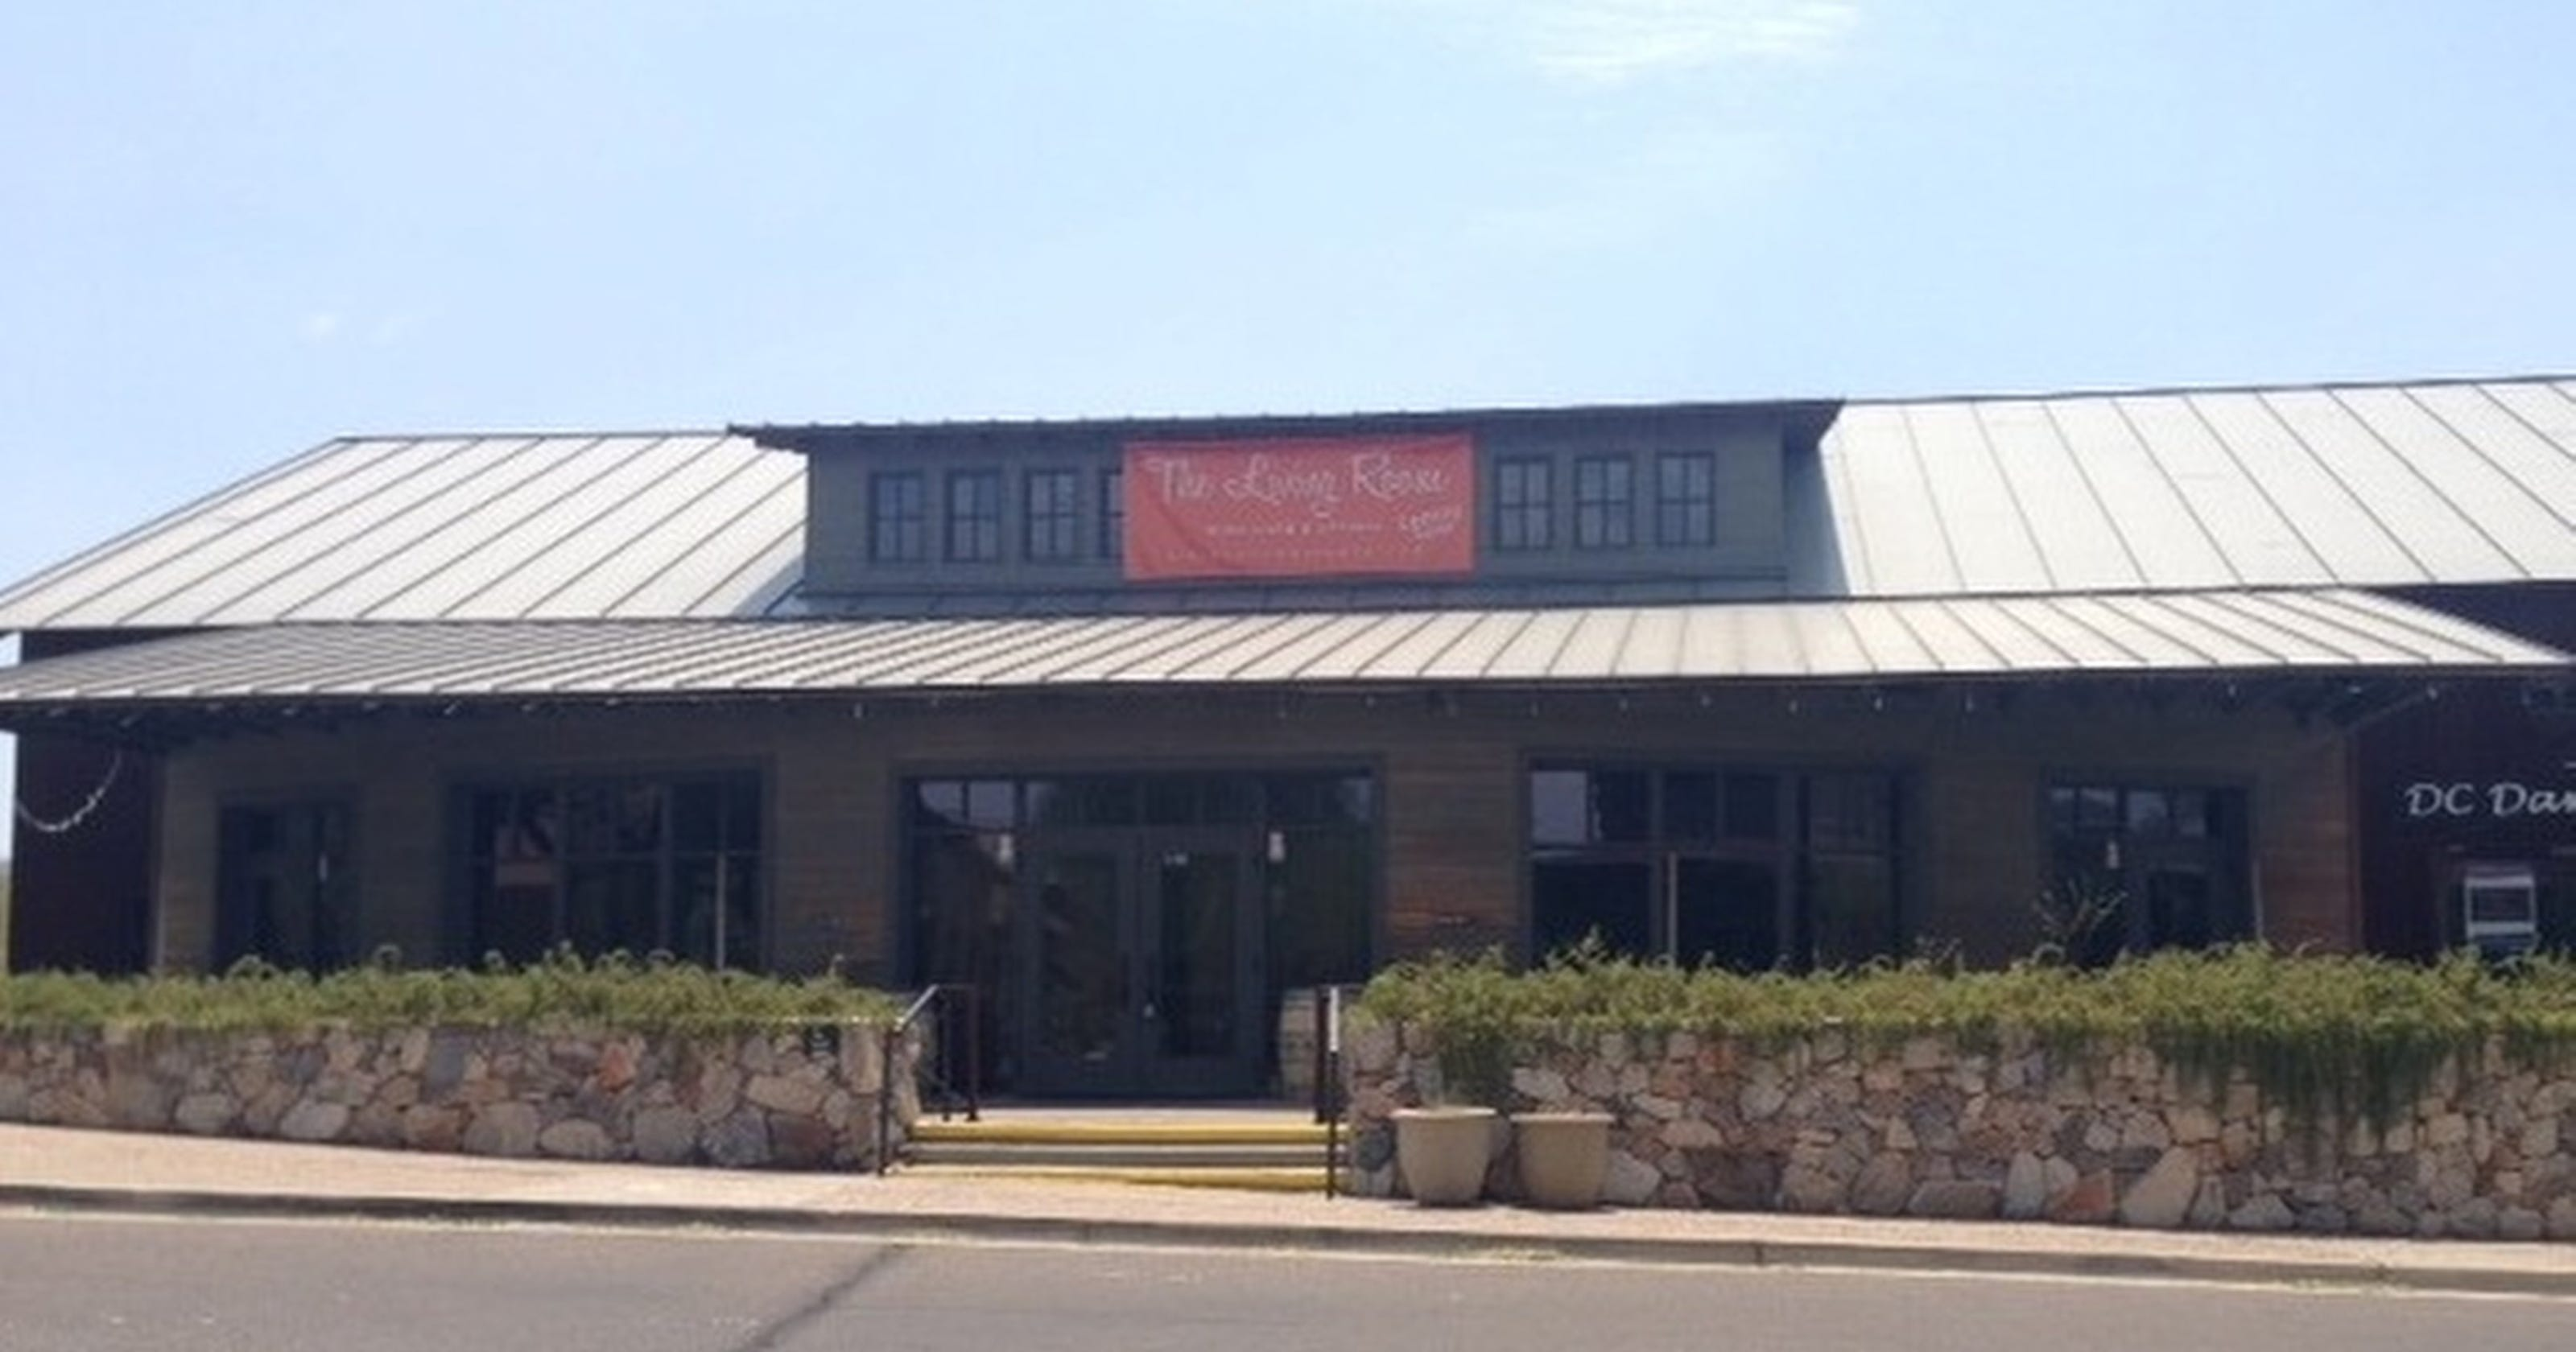 Living Room Wine Cafe Opens In Scottsdale At Dc Ranch